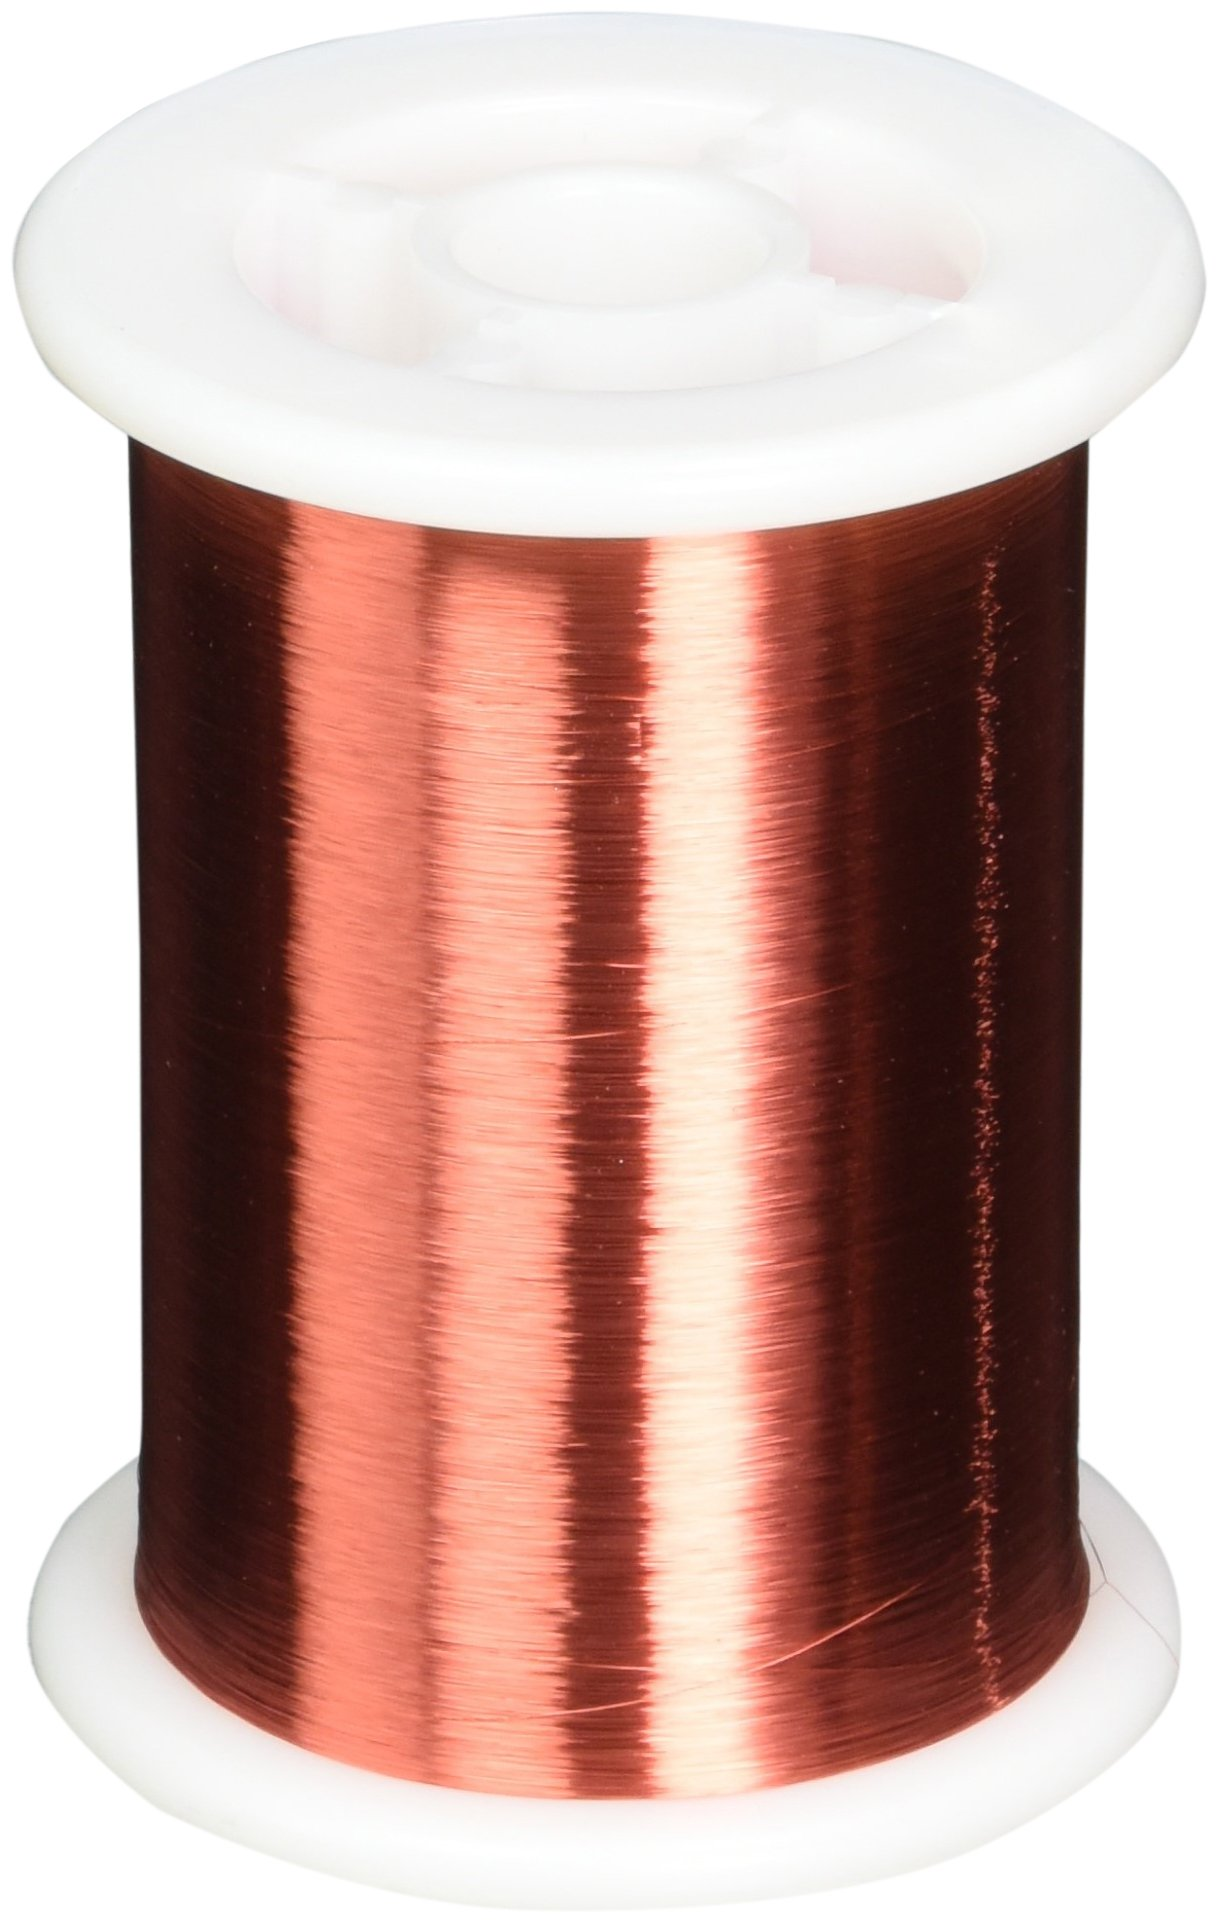 Remington Industries 42SNSPR.5 42 AWG Magnet Wire, Enameled Copper Wire, 8 oz, 0.0026'' Diameter, 25657' Length, Red